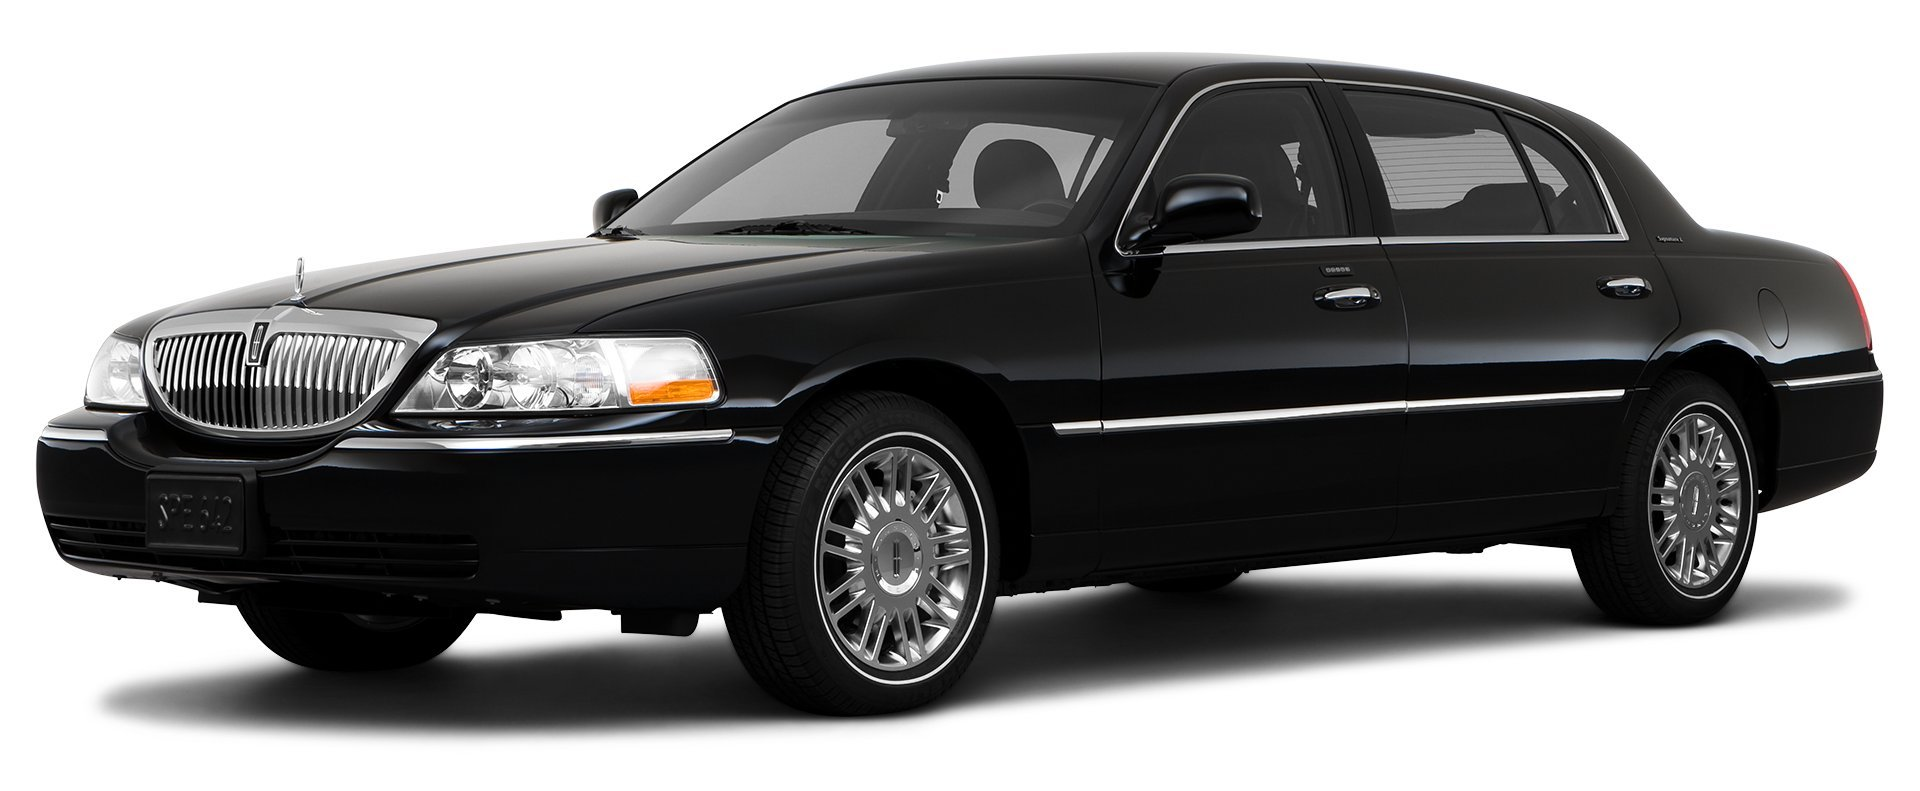 2010 town car	  Amazon.com: 2010 Lincoln Town Car Reviews, Images, and Specs: Vehicles